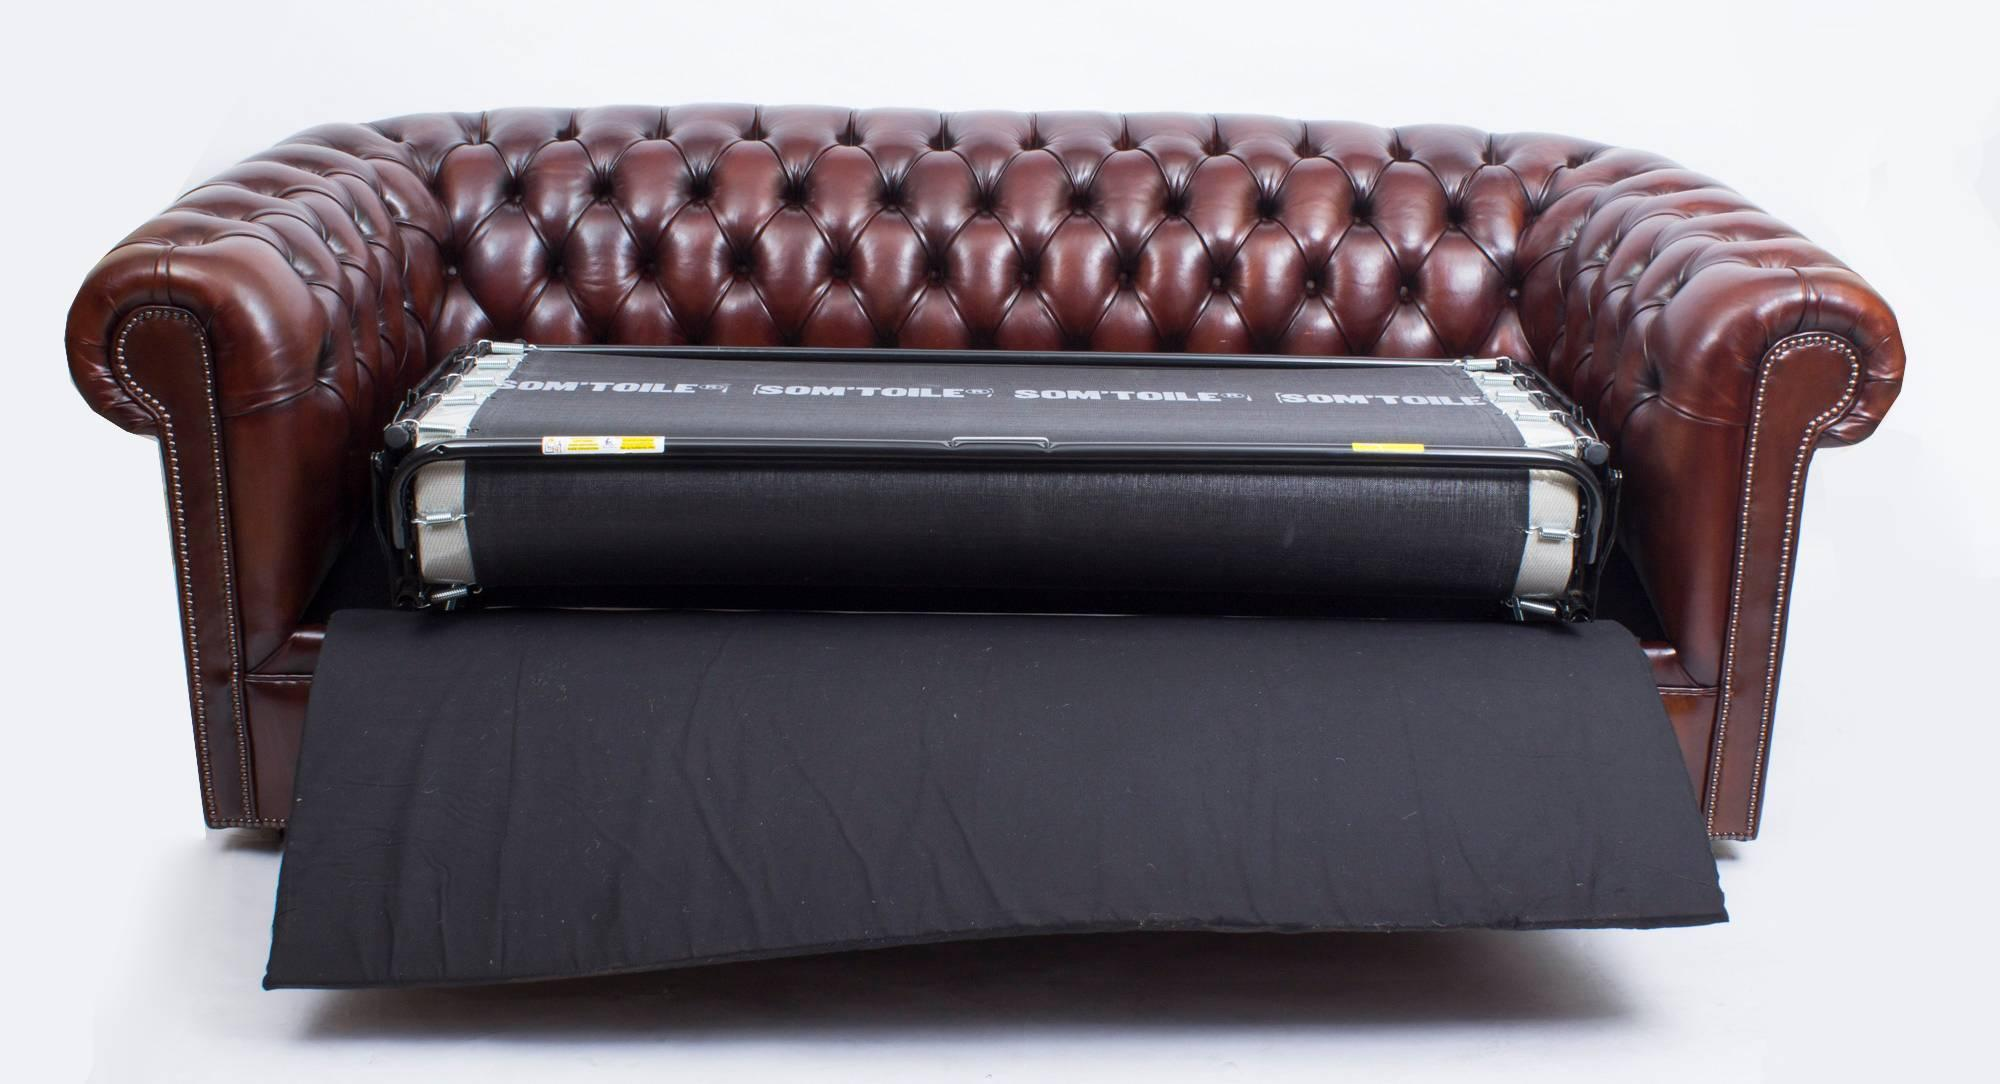 chesterfield sofa bed lodge bespoke english leather bbo for sale at 1stdibs 1